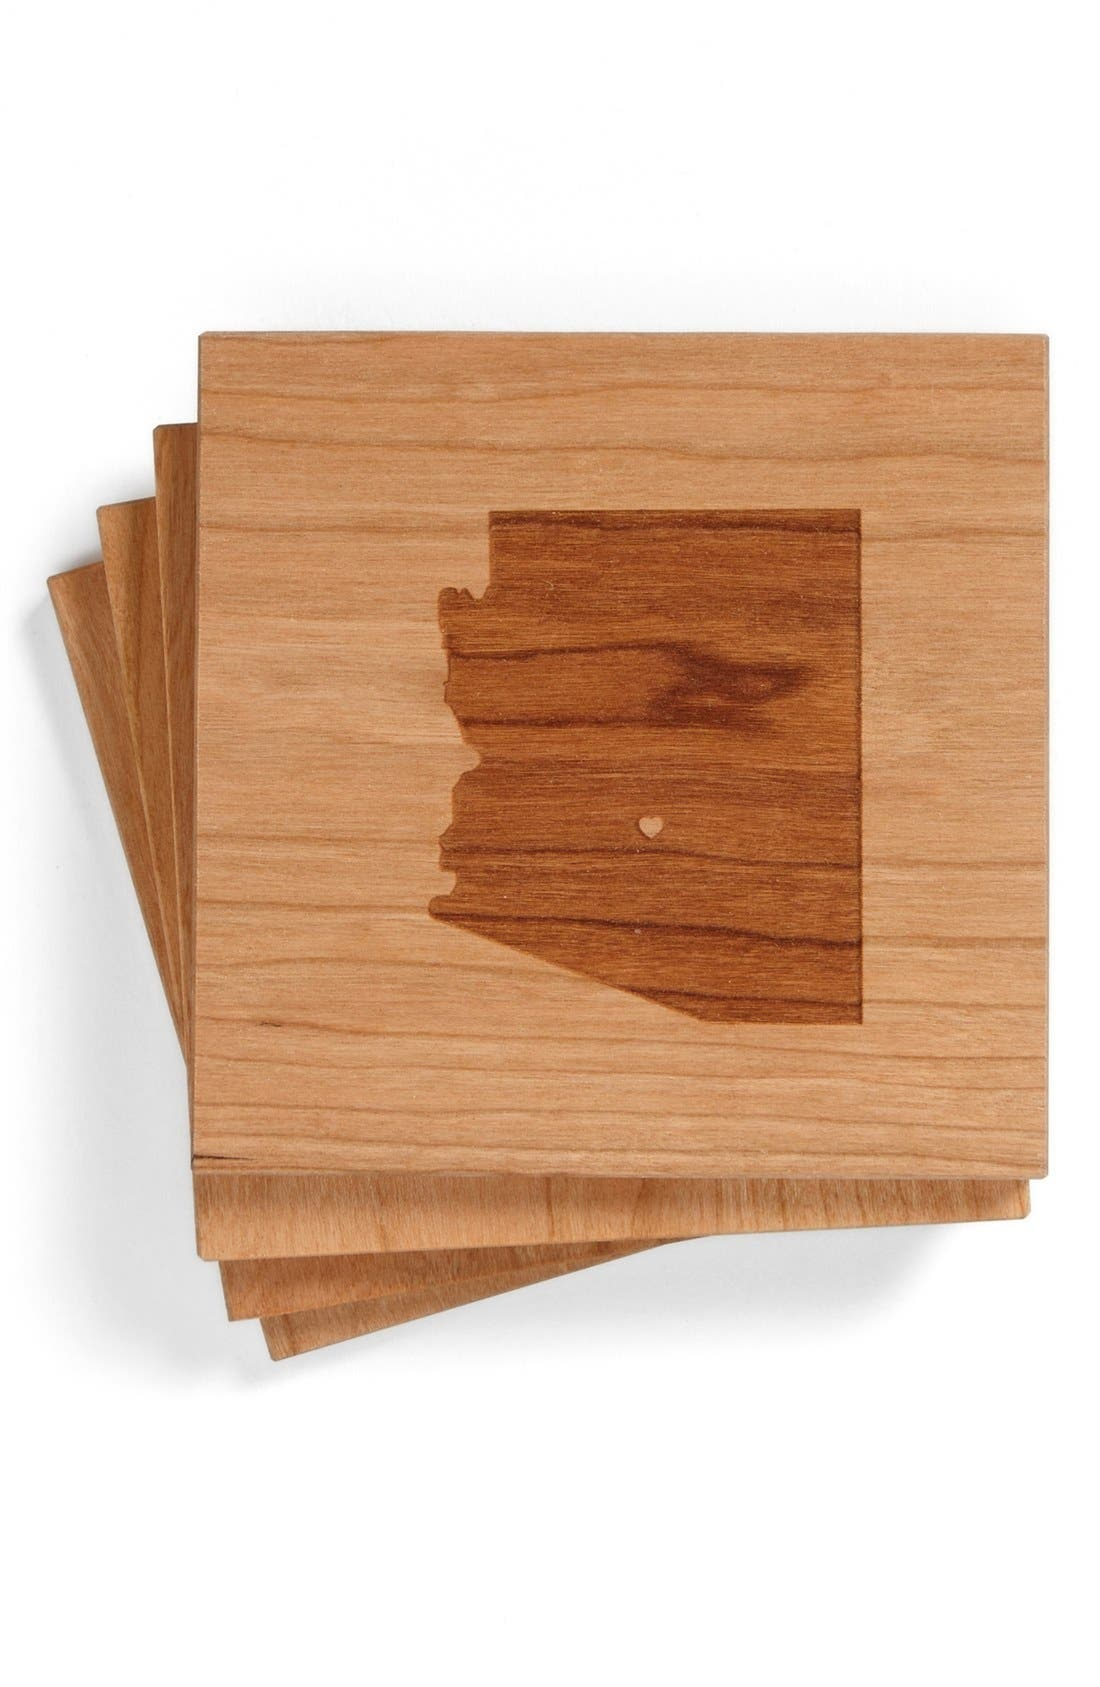 'State Silhouette' Coasters,                             Main thumbnail 9, color,